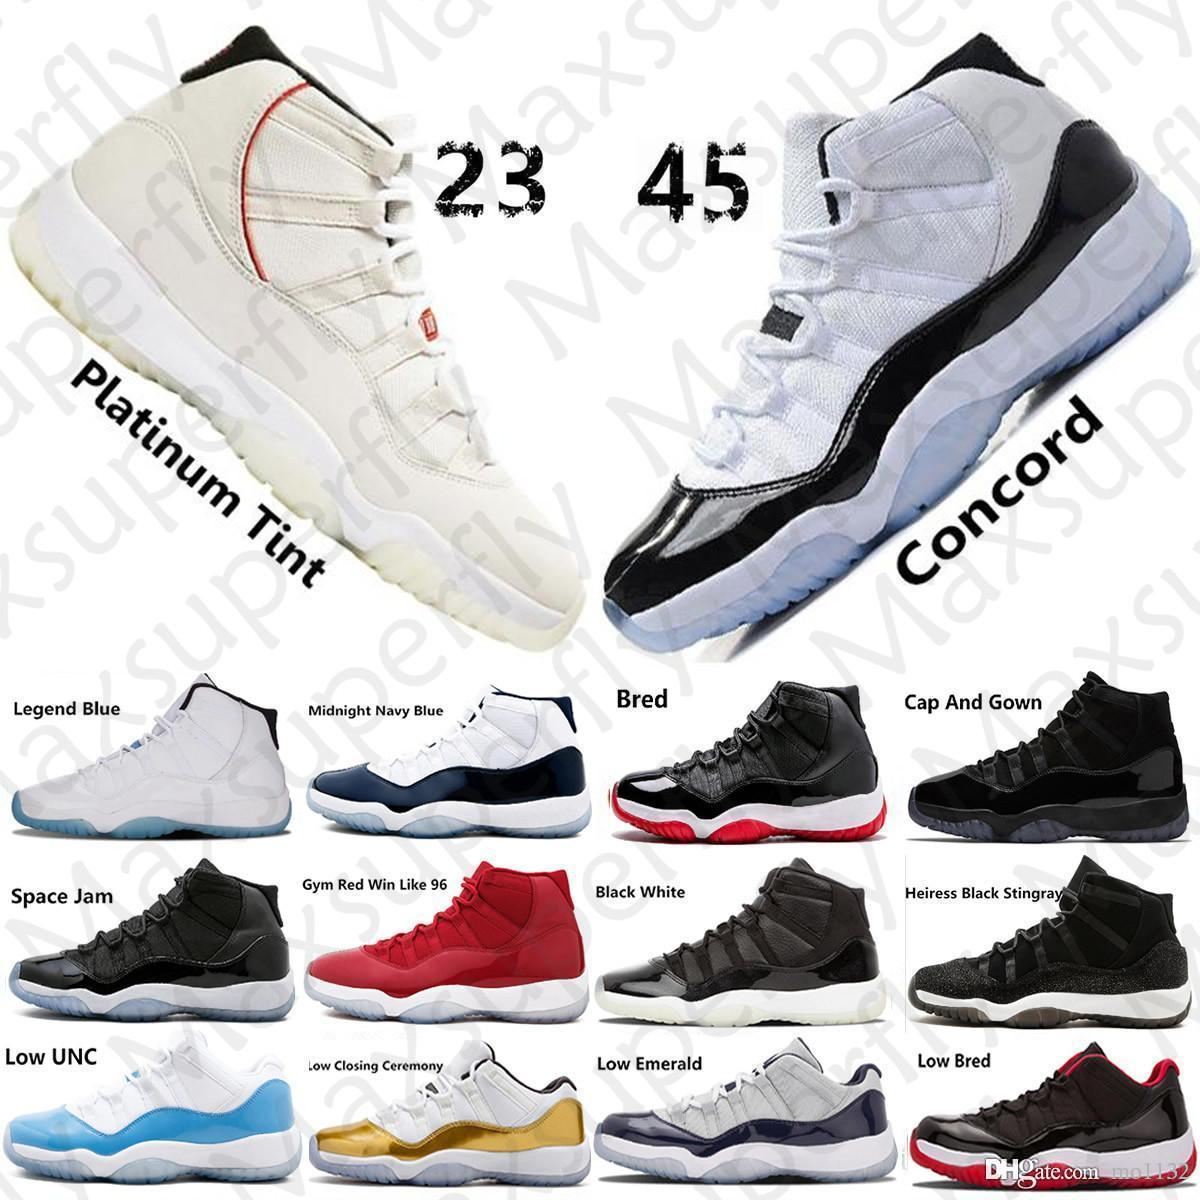 Jumpman Concord High 45 11 XI 11s Gorra y bata PRM Heiress Gym Red Chicago Platinum Tint Space Jams Hombres Zapatillas de baloncesto zapatillas deportivas